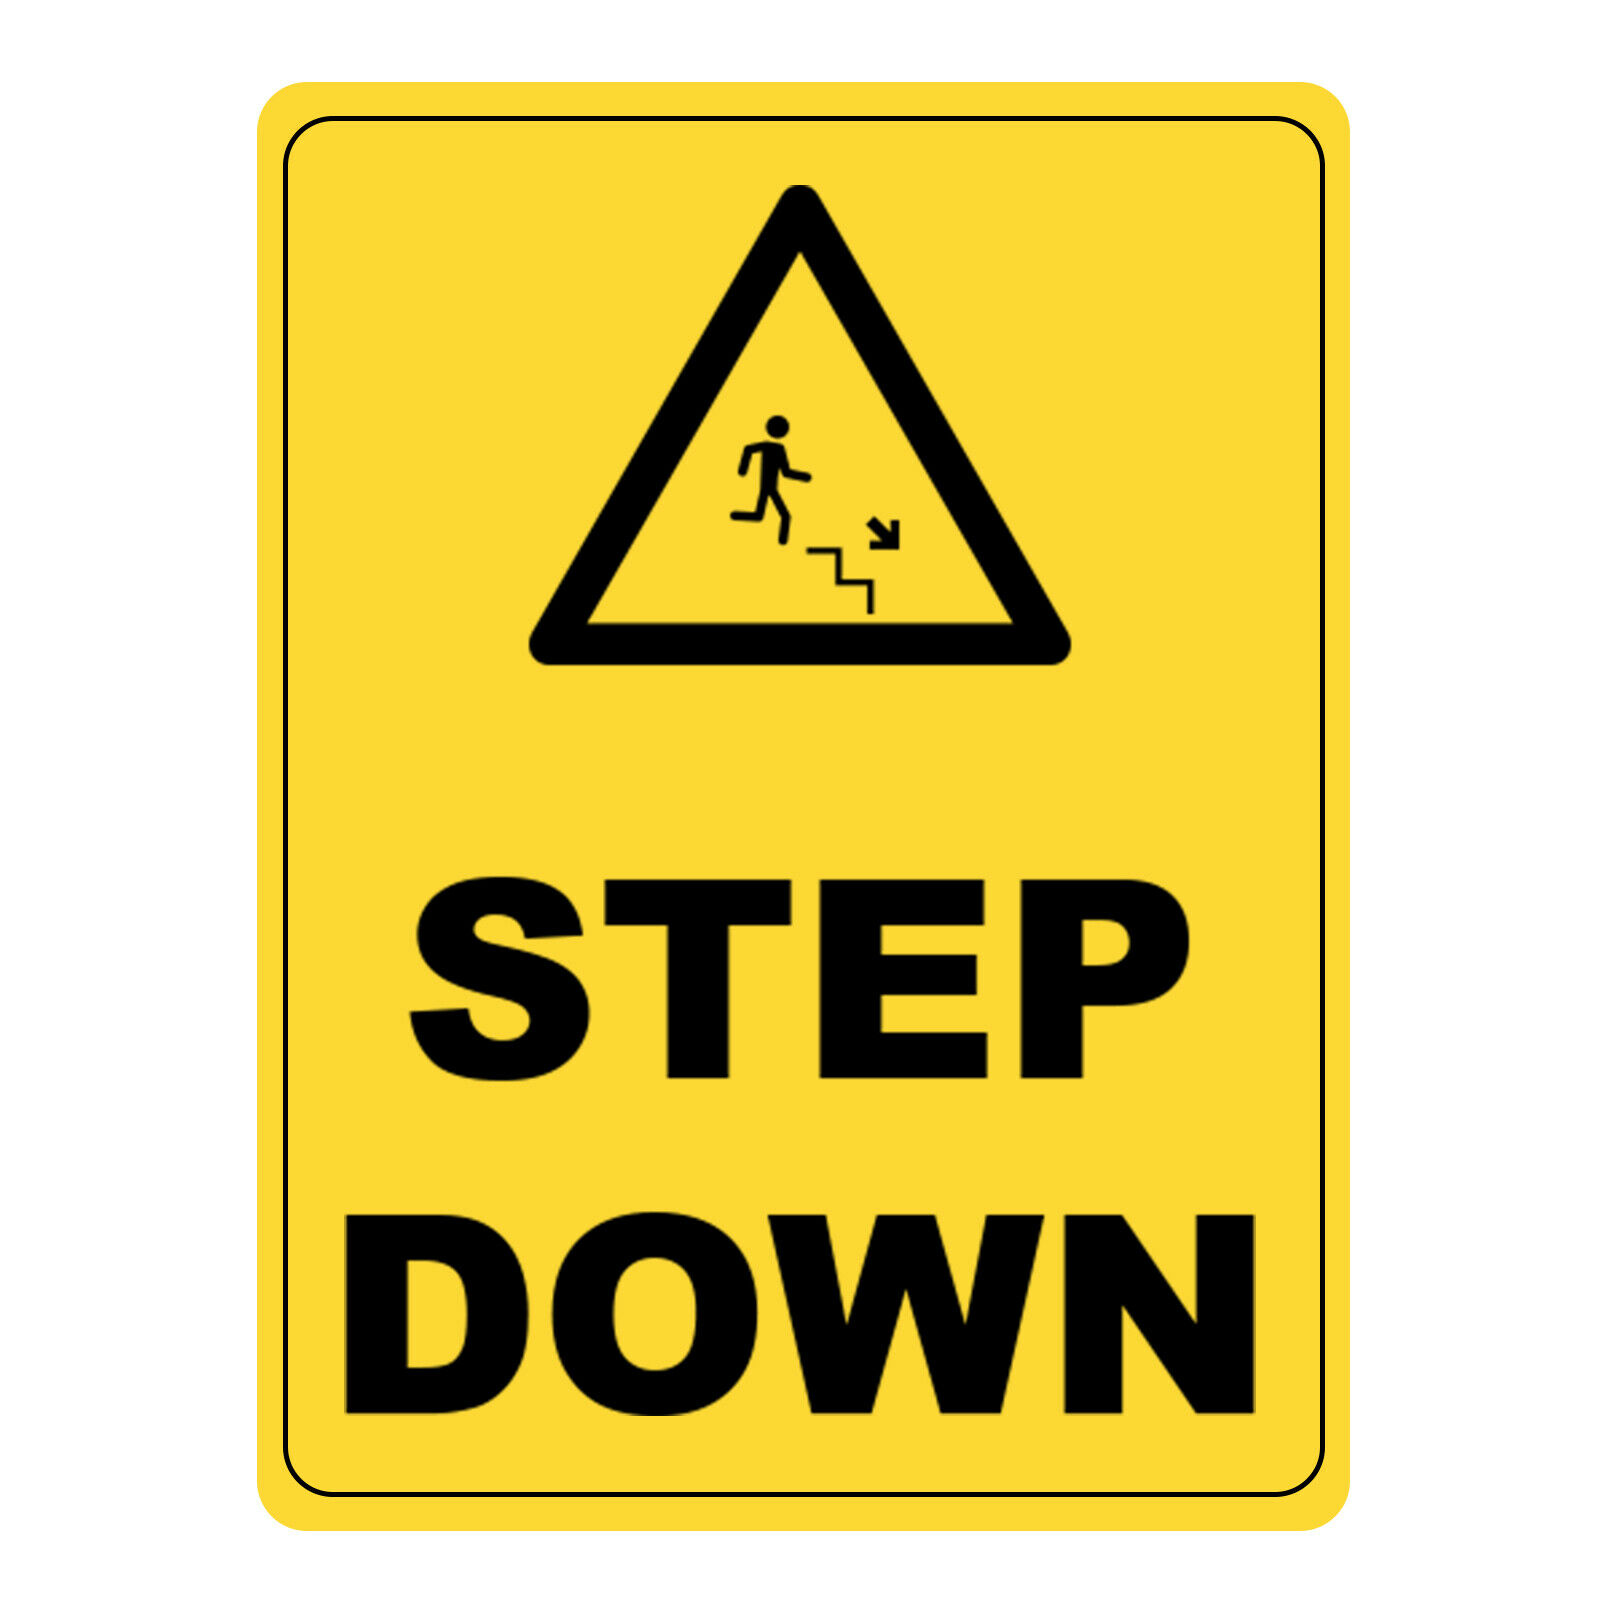 Step Down Warning Sign, Metal Aluminium UV Print Dangerous Safety Caution Sign